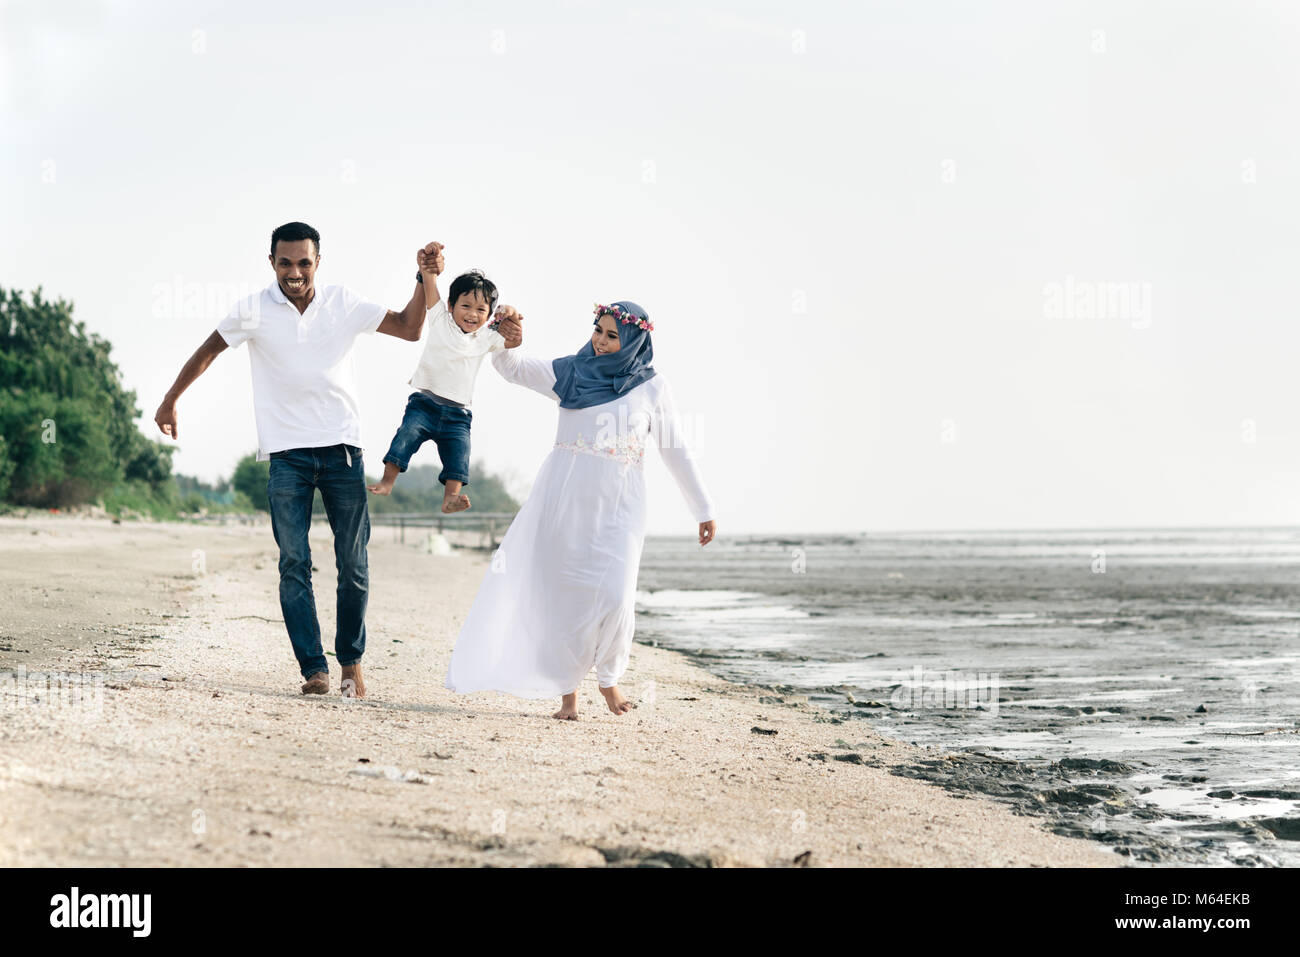 happy family having fun at muddy beach located in pantai remis,Selangor,Malaysia. Family concept - Stock Image